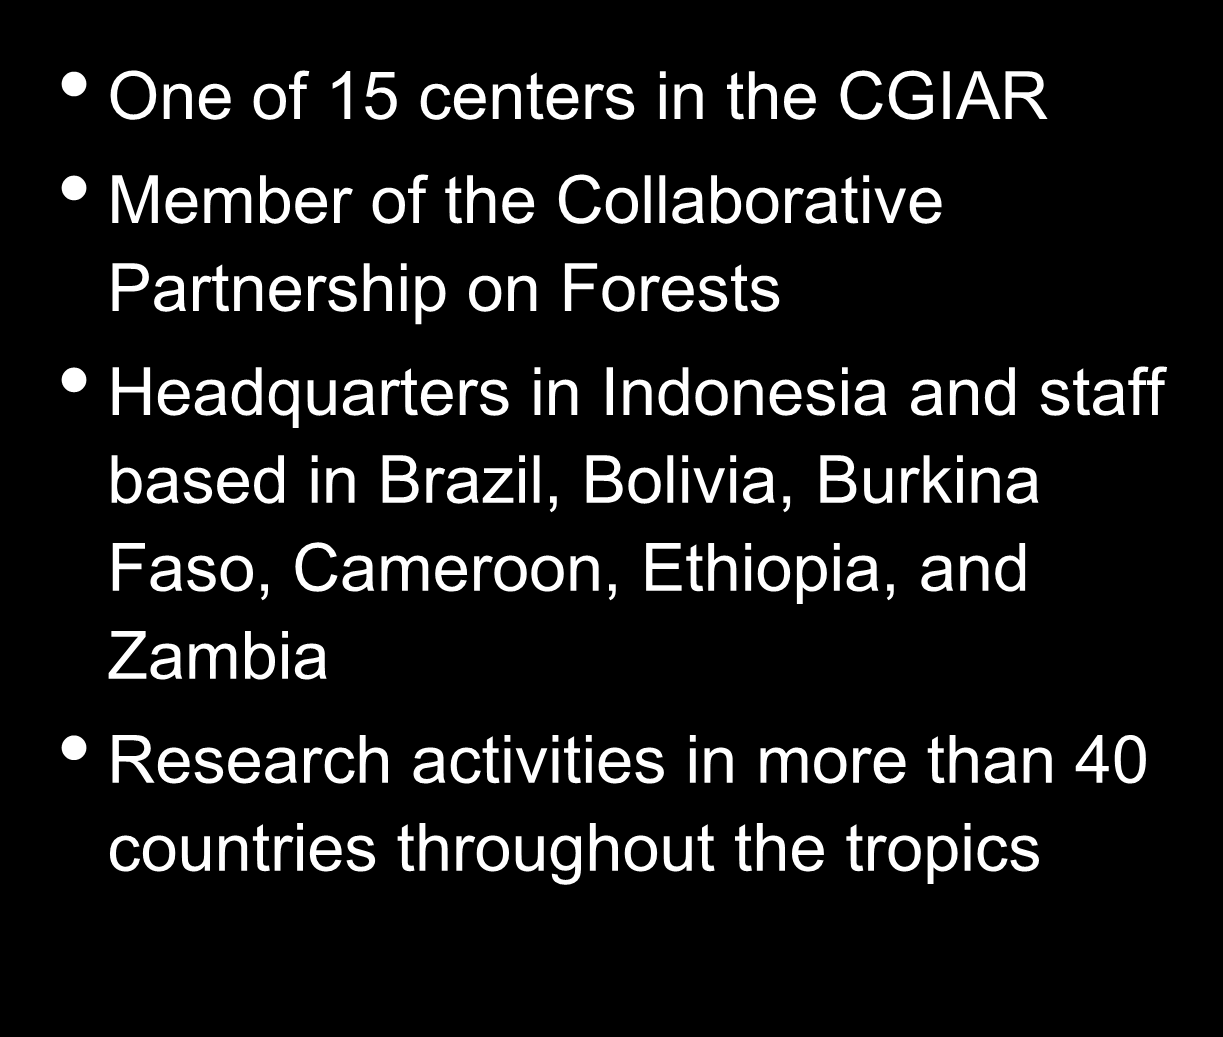 Indonesia and staff based in Brazil, Bolivia, Burkina Faso, Cameroon,